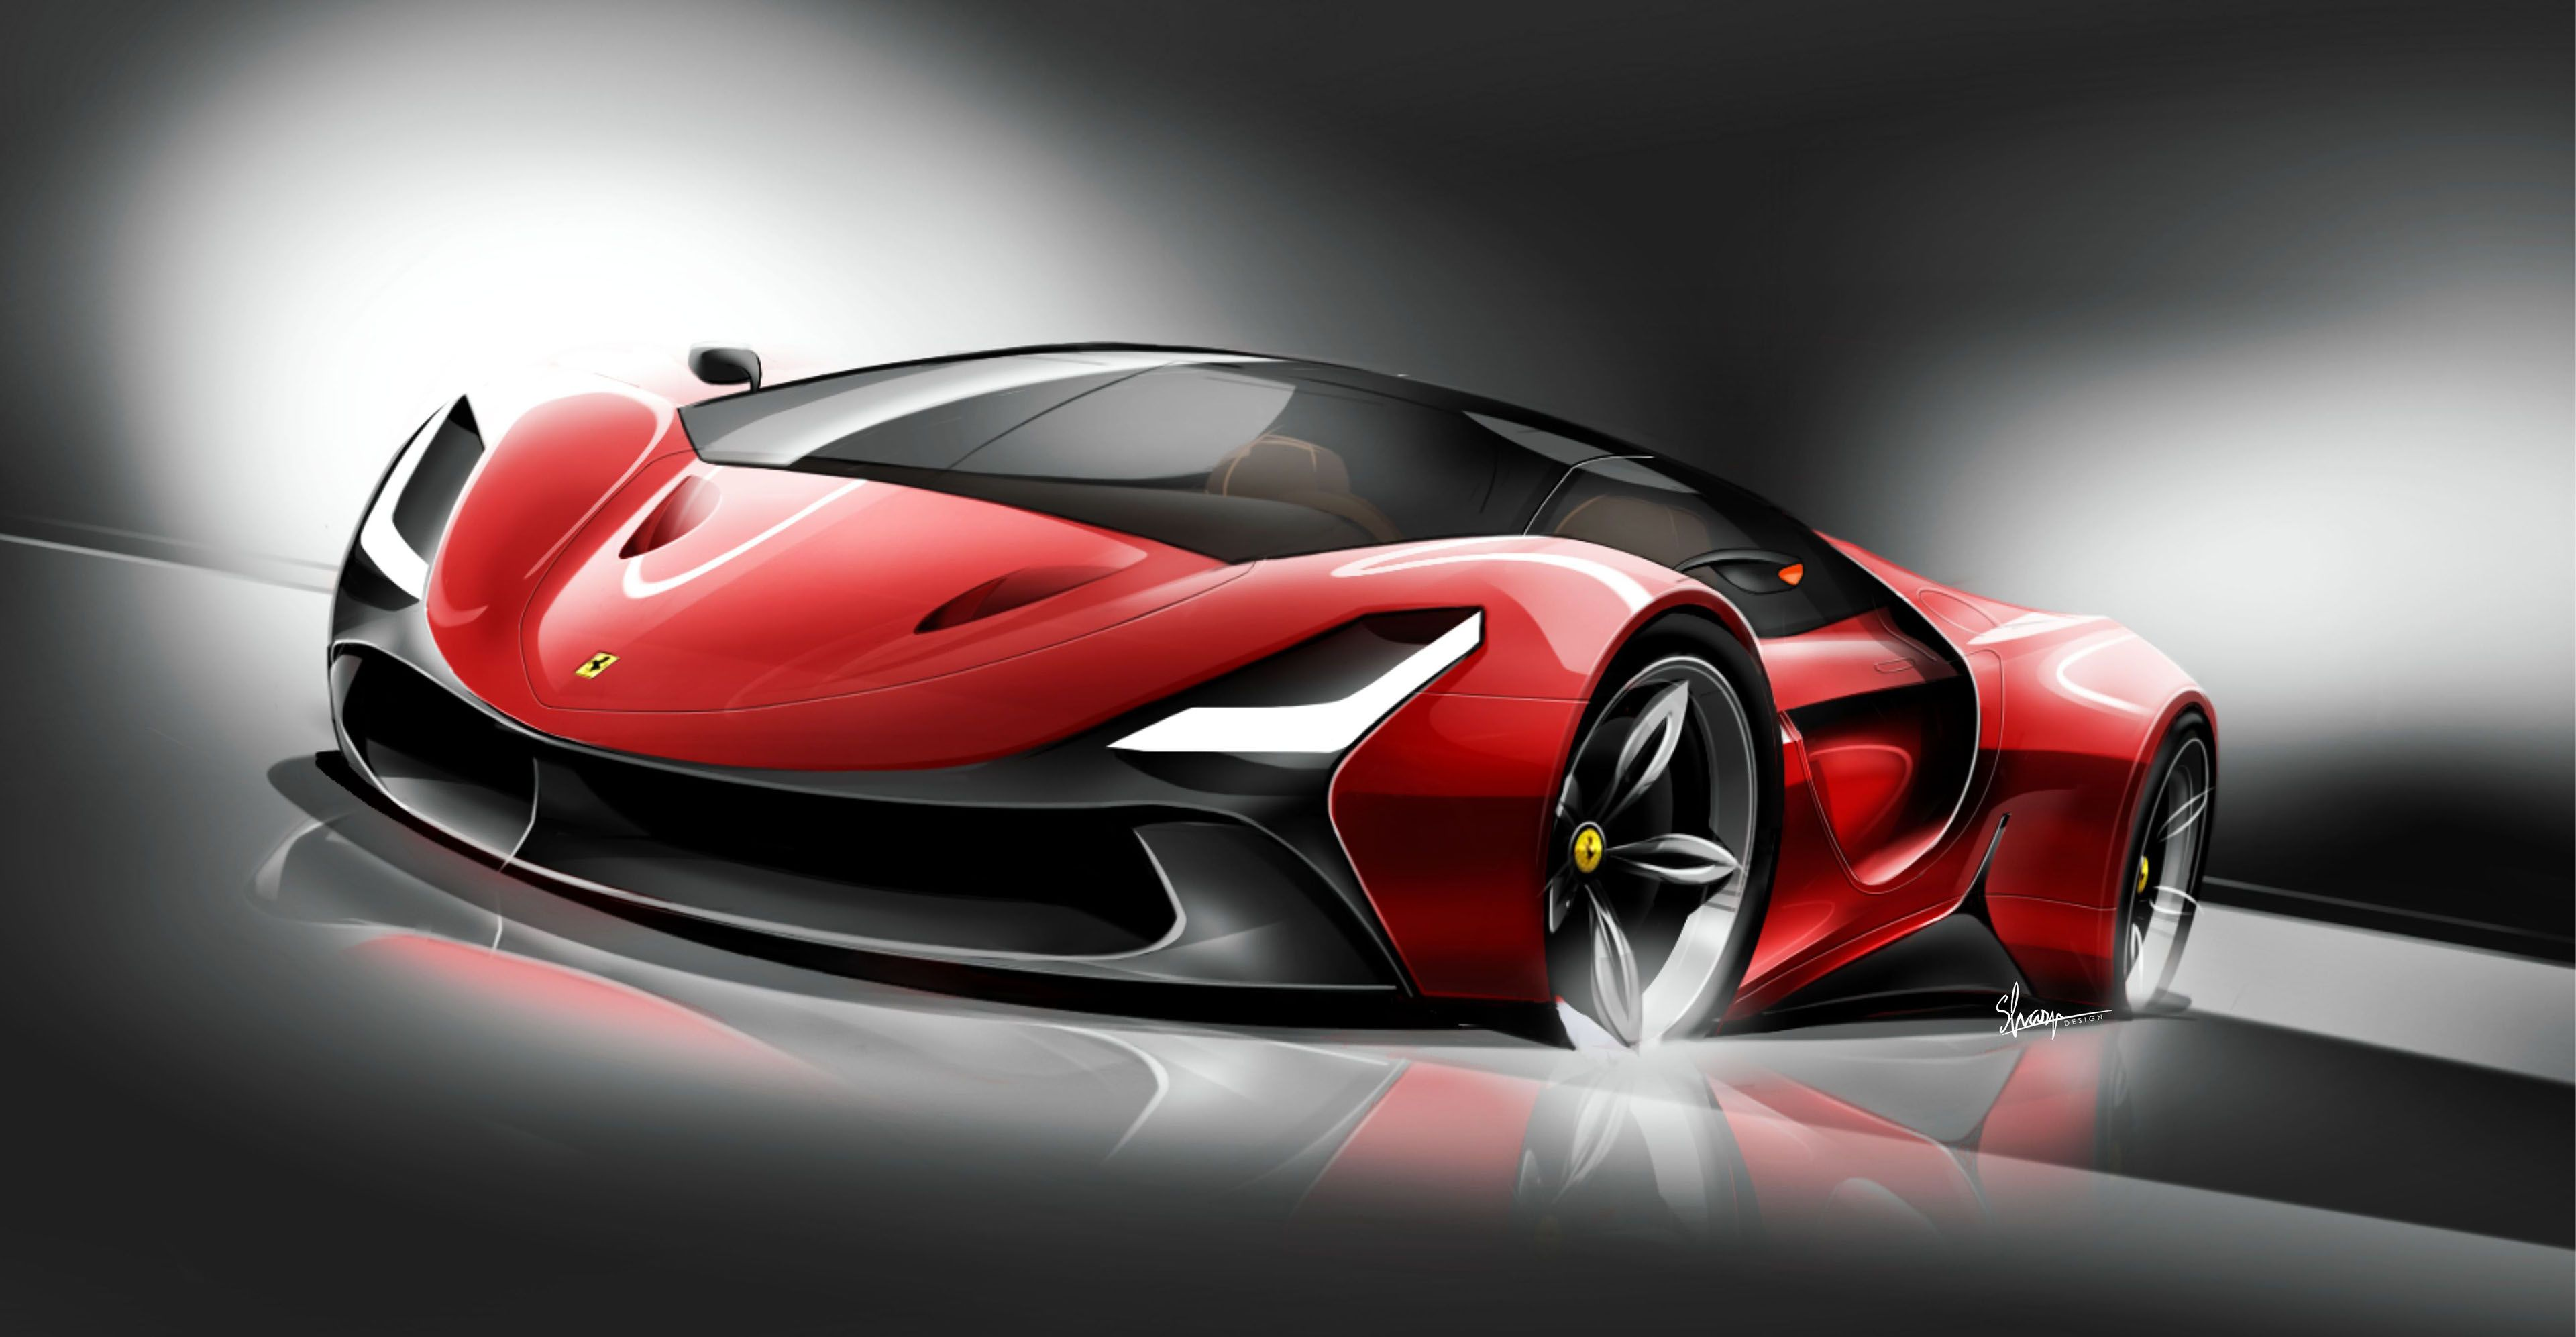 The Taska Personal Project To Design A New Super Car According A Specific Brand The Outcomeferrari Was Chosen As The Brand Futuristic Cars Ferrari Super Cars